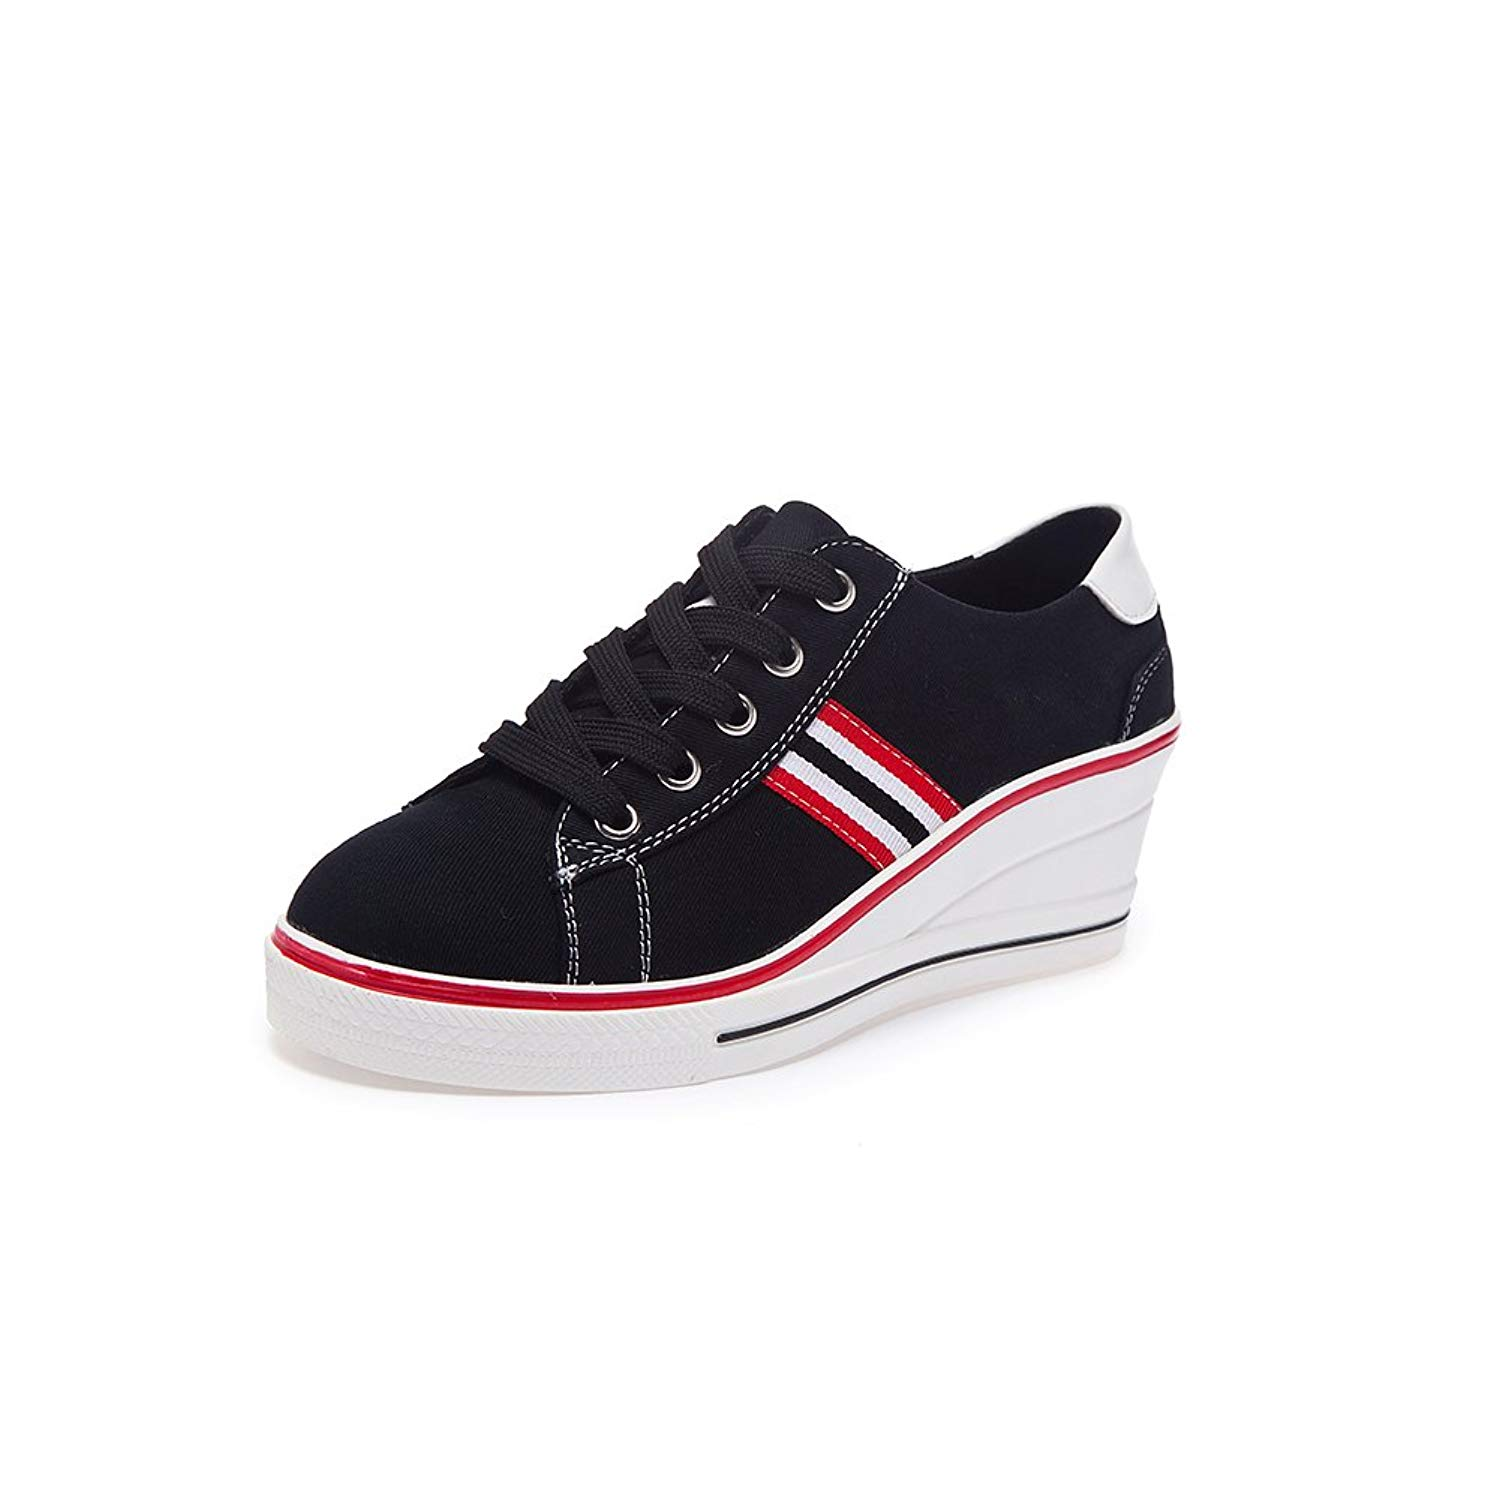 fb2e7aaaa850 Get Quotations · Women s Canvas Shoes Wedge Heeled Platform Sneaker Fashion  Pump Shoes